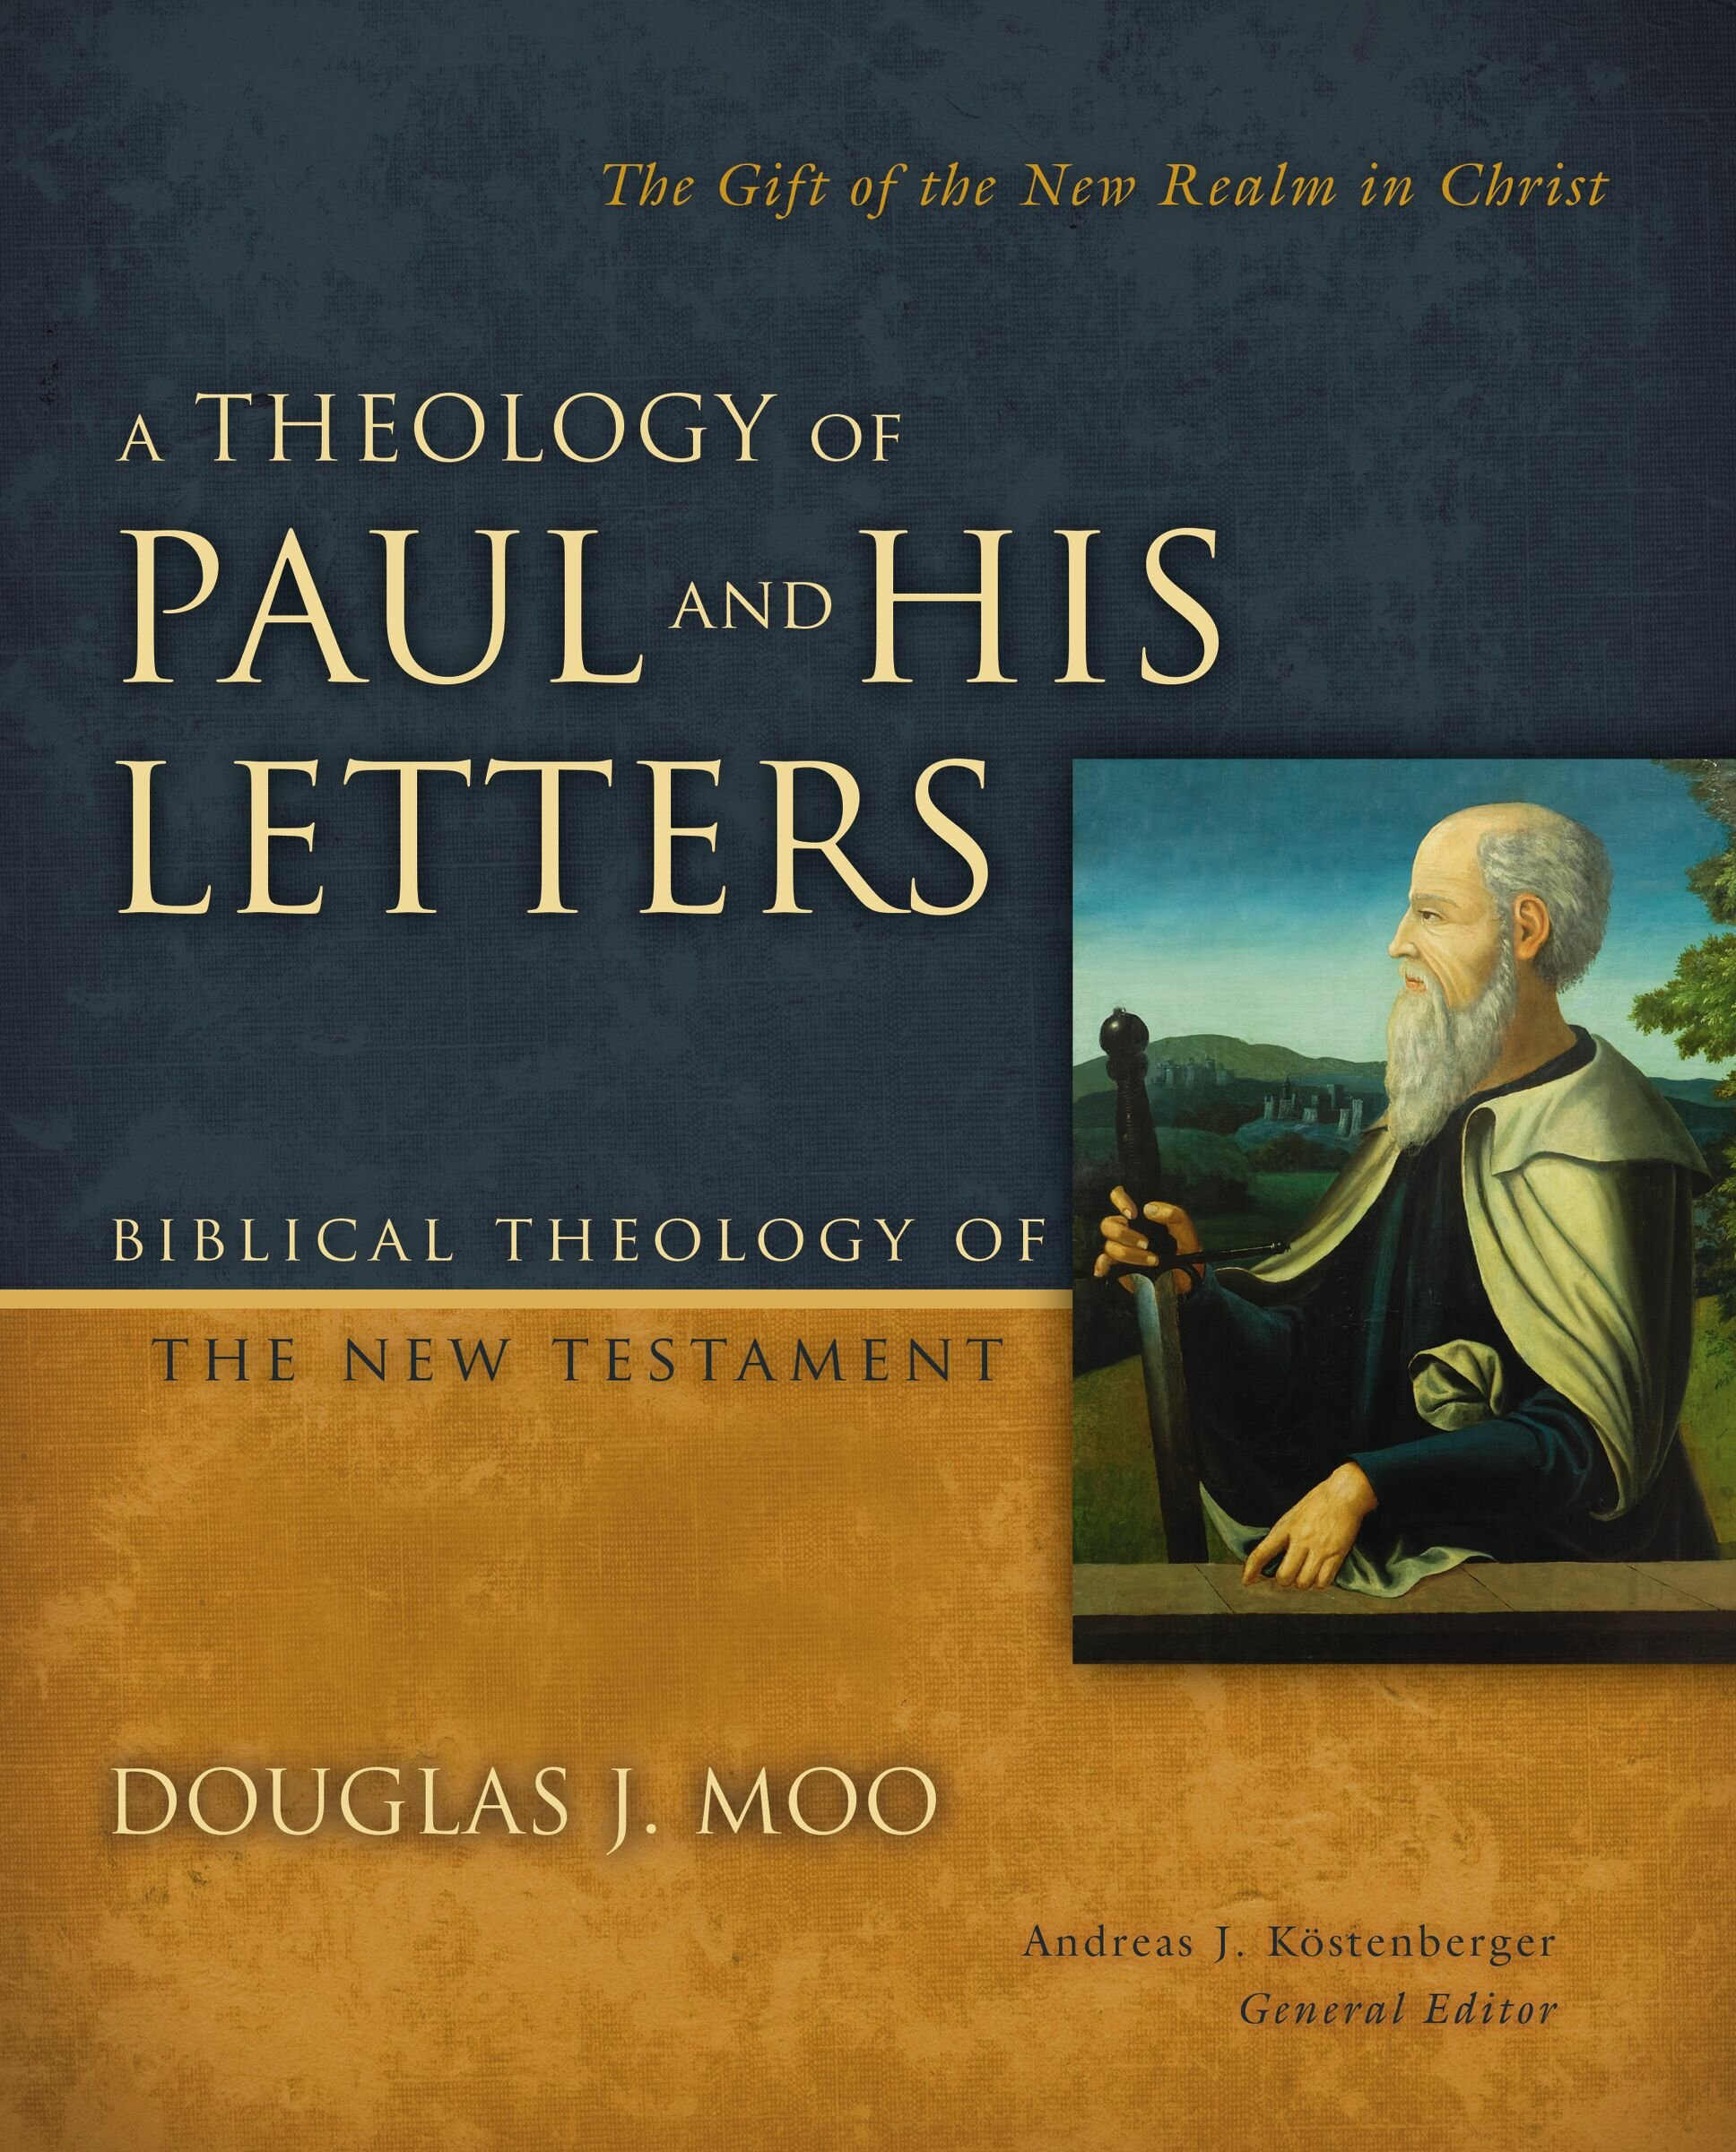 A Theology of Paul and His Letters: The Gift of the New Realm in Christ (Biblical Theology of the New Testament | BTNT)